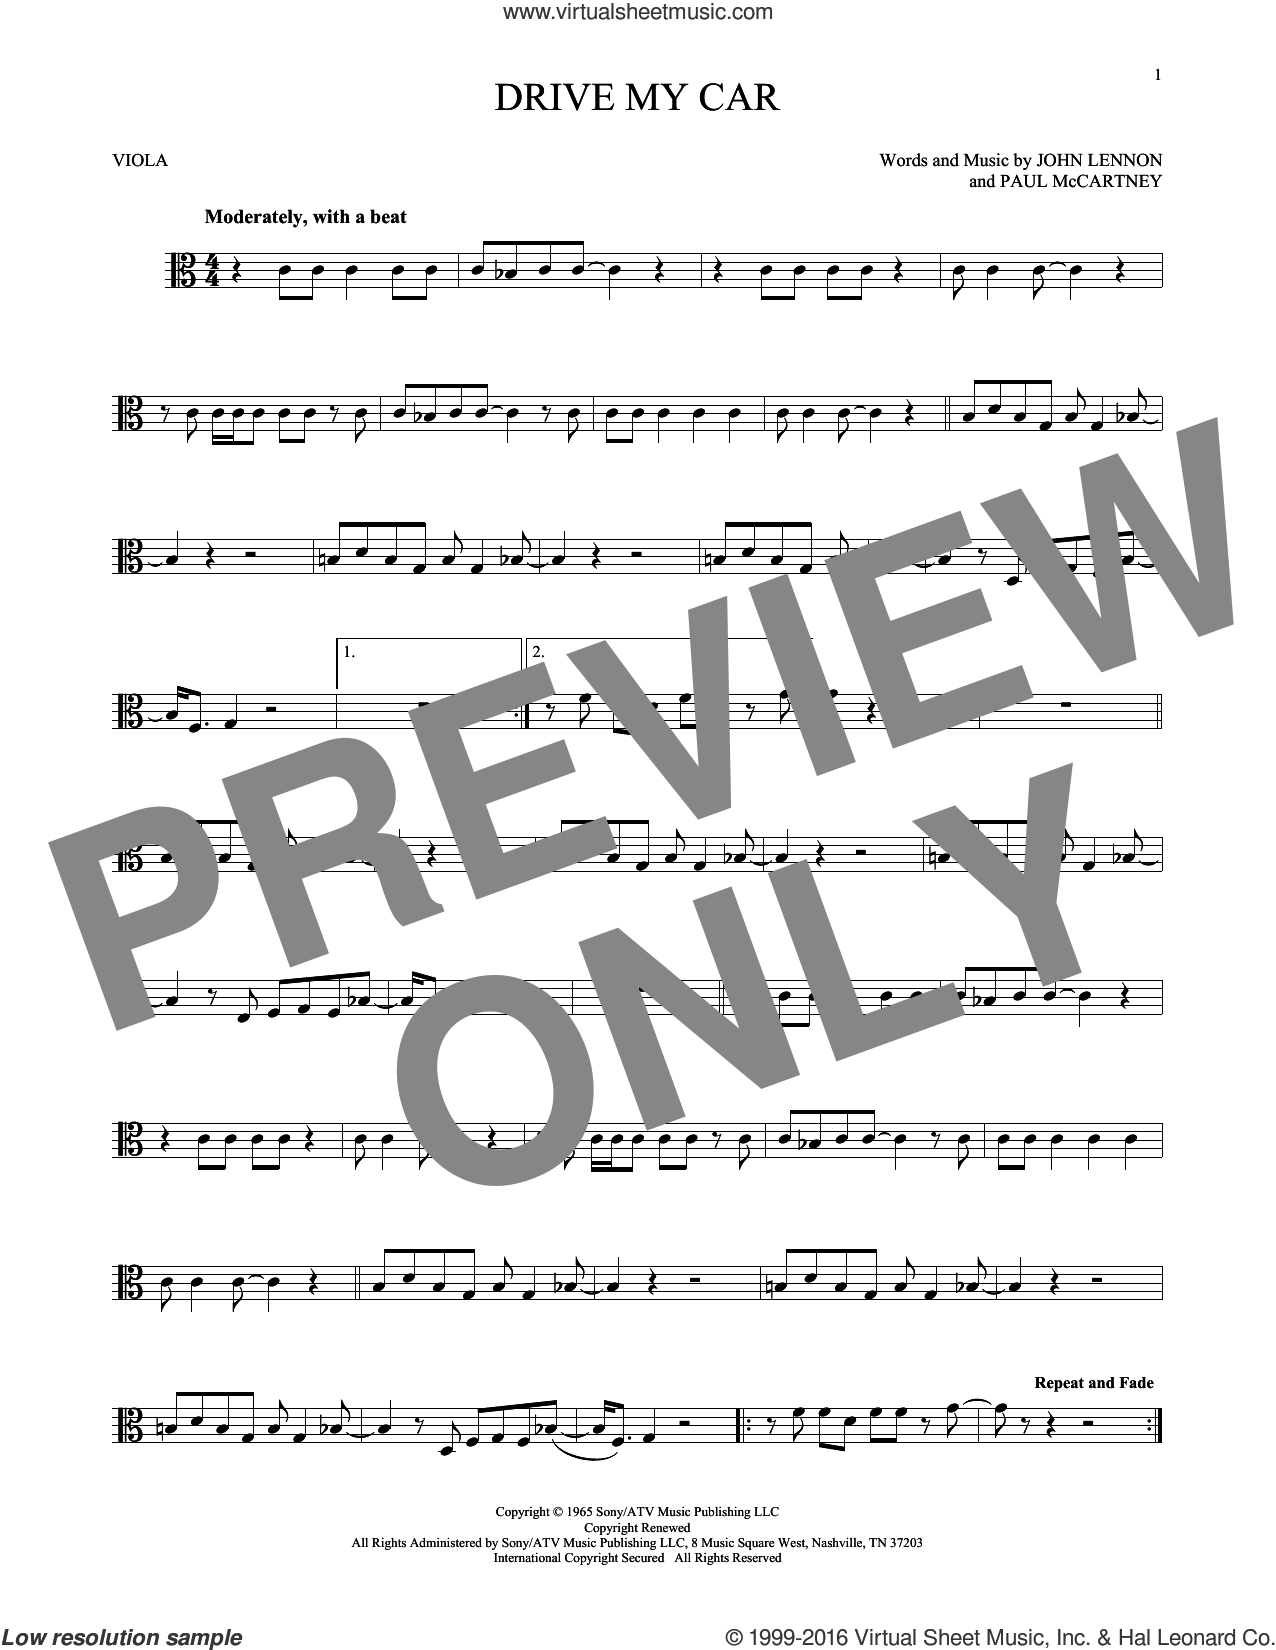 Drive My Car sheet music for viola solo by The Beatles, John Lennon and Paul McCartney, intermediate skill level